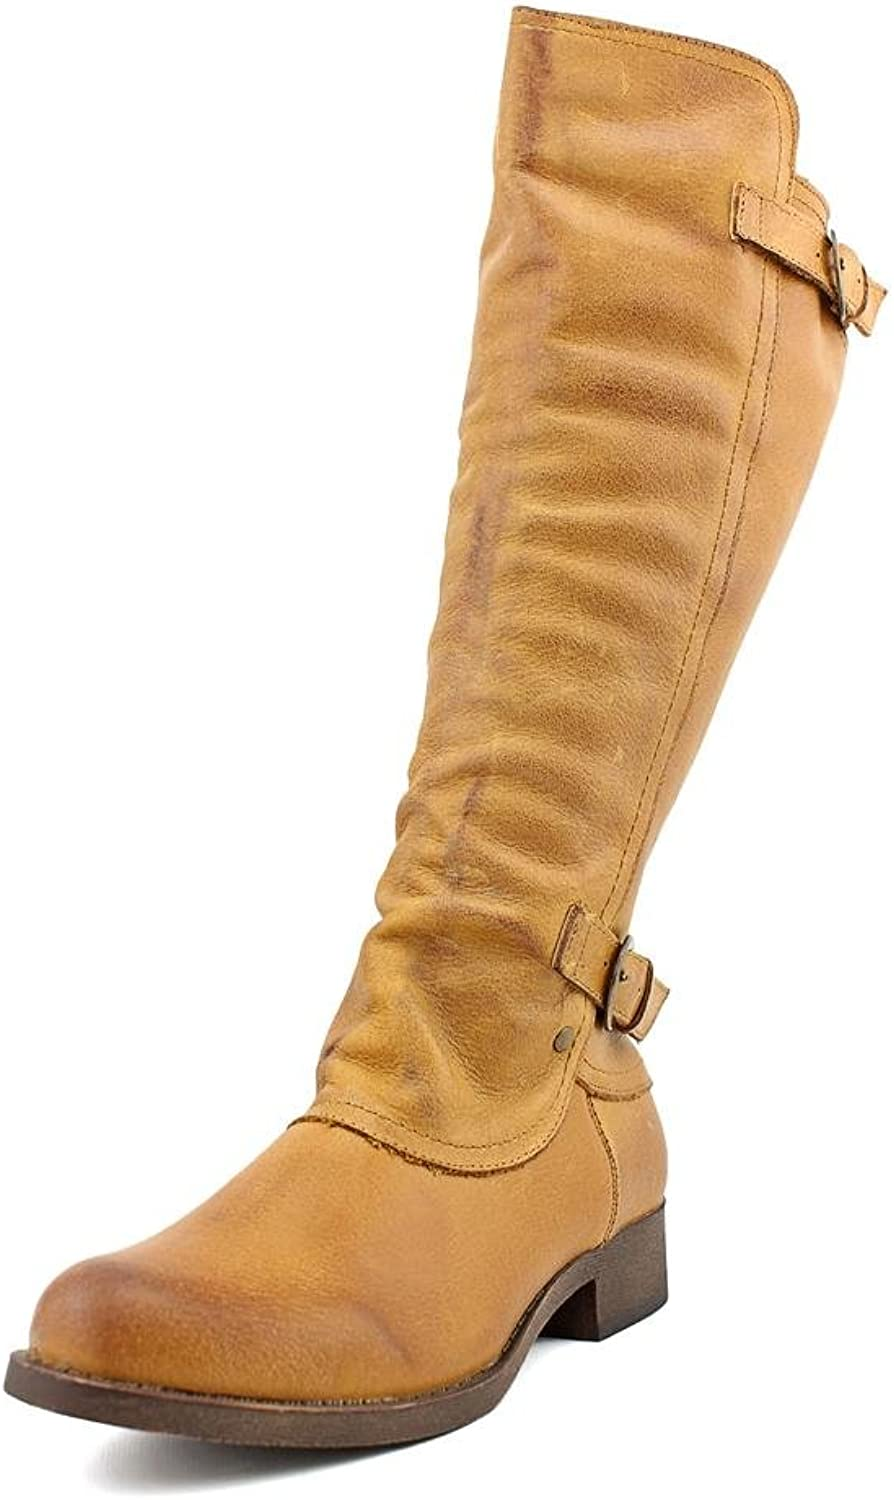 Rocket Dog Women's Cato Riding Boot